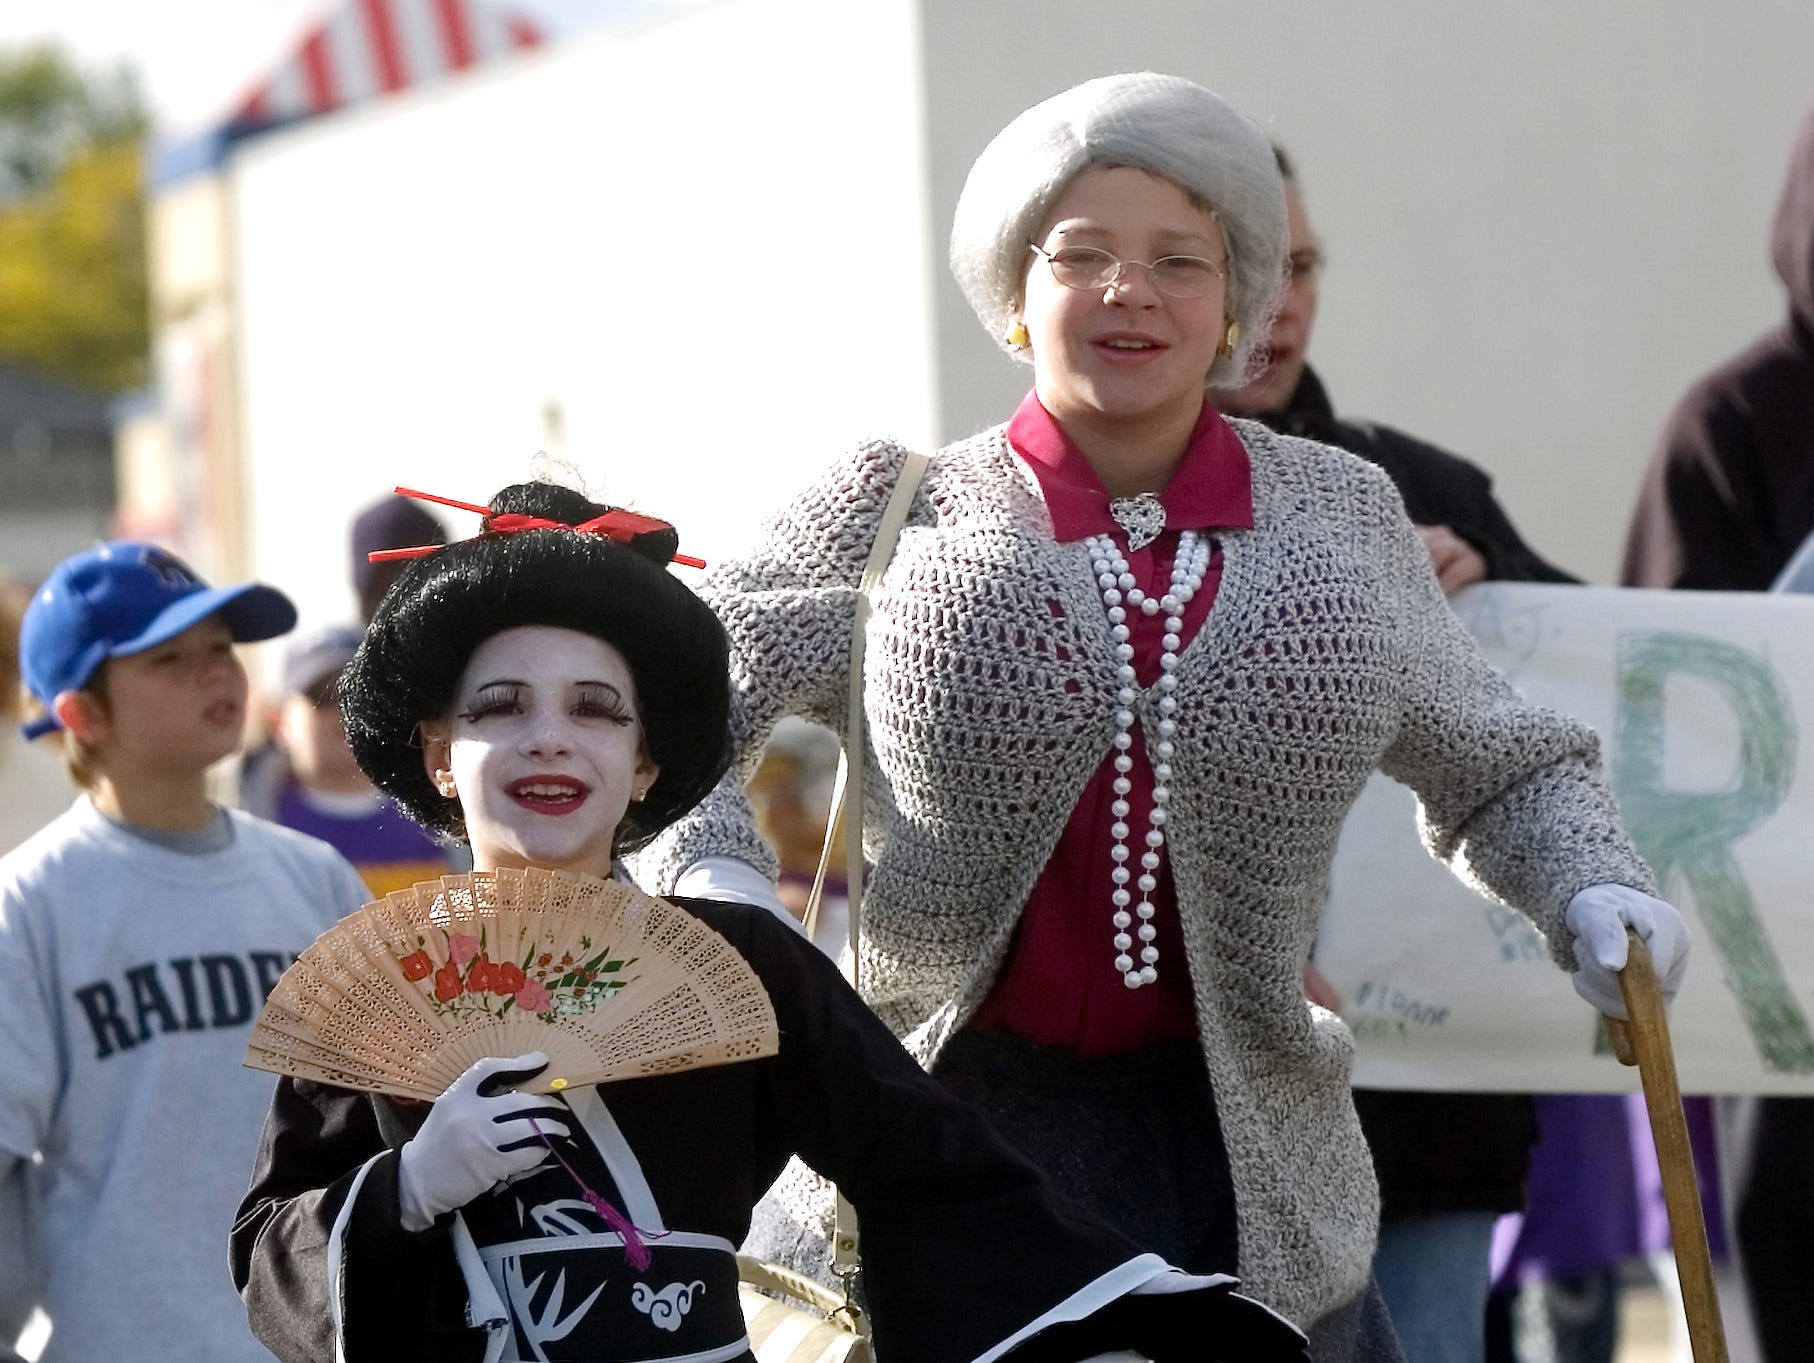 2006: Siblings Brittany DeSario, 7, of Binghamton, left, and Tyler DeSario, 10, dress as a geisha and a granny for East Side Youth Association's annual Halloween parade on Robinson Street in Binghamton.